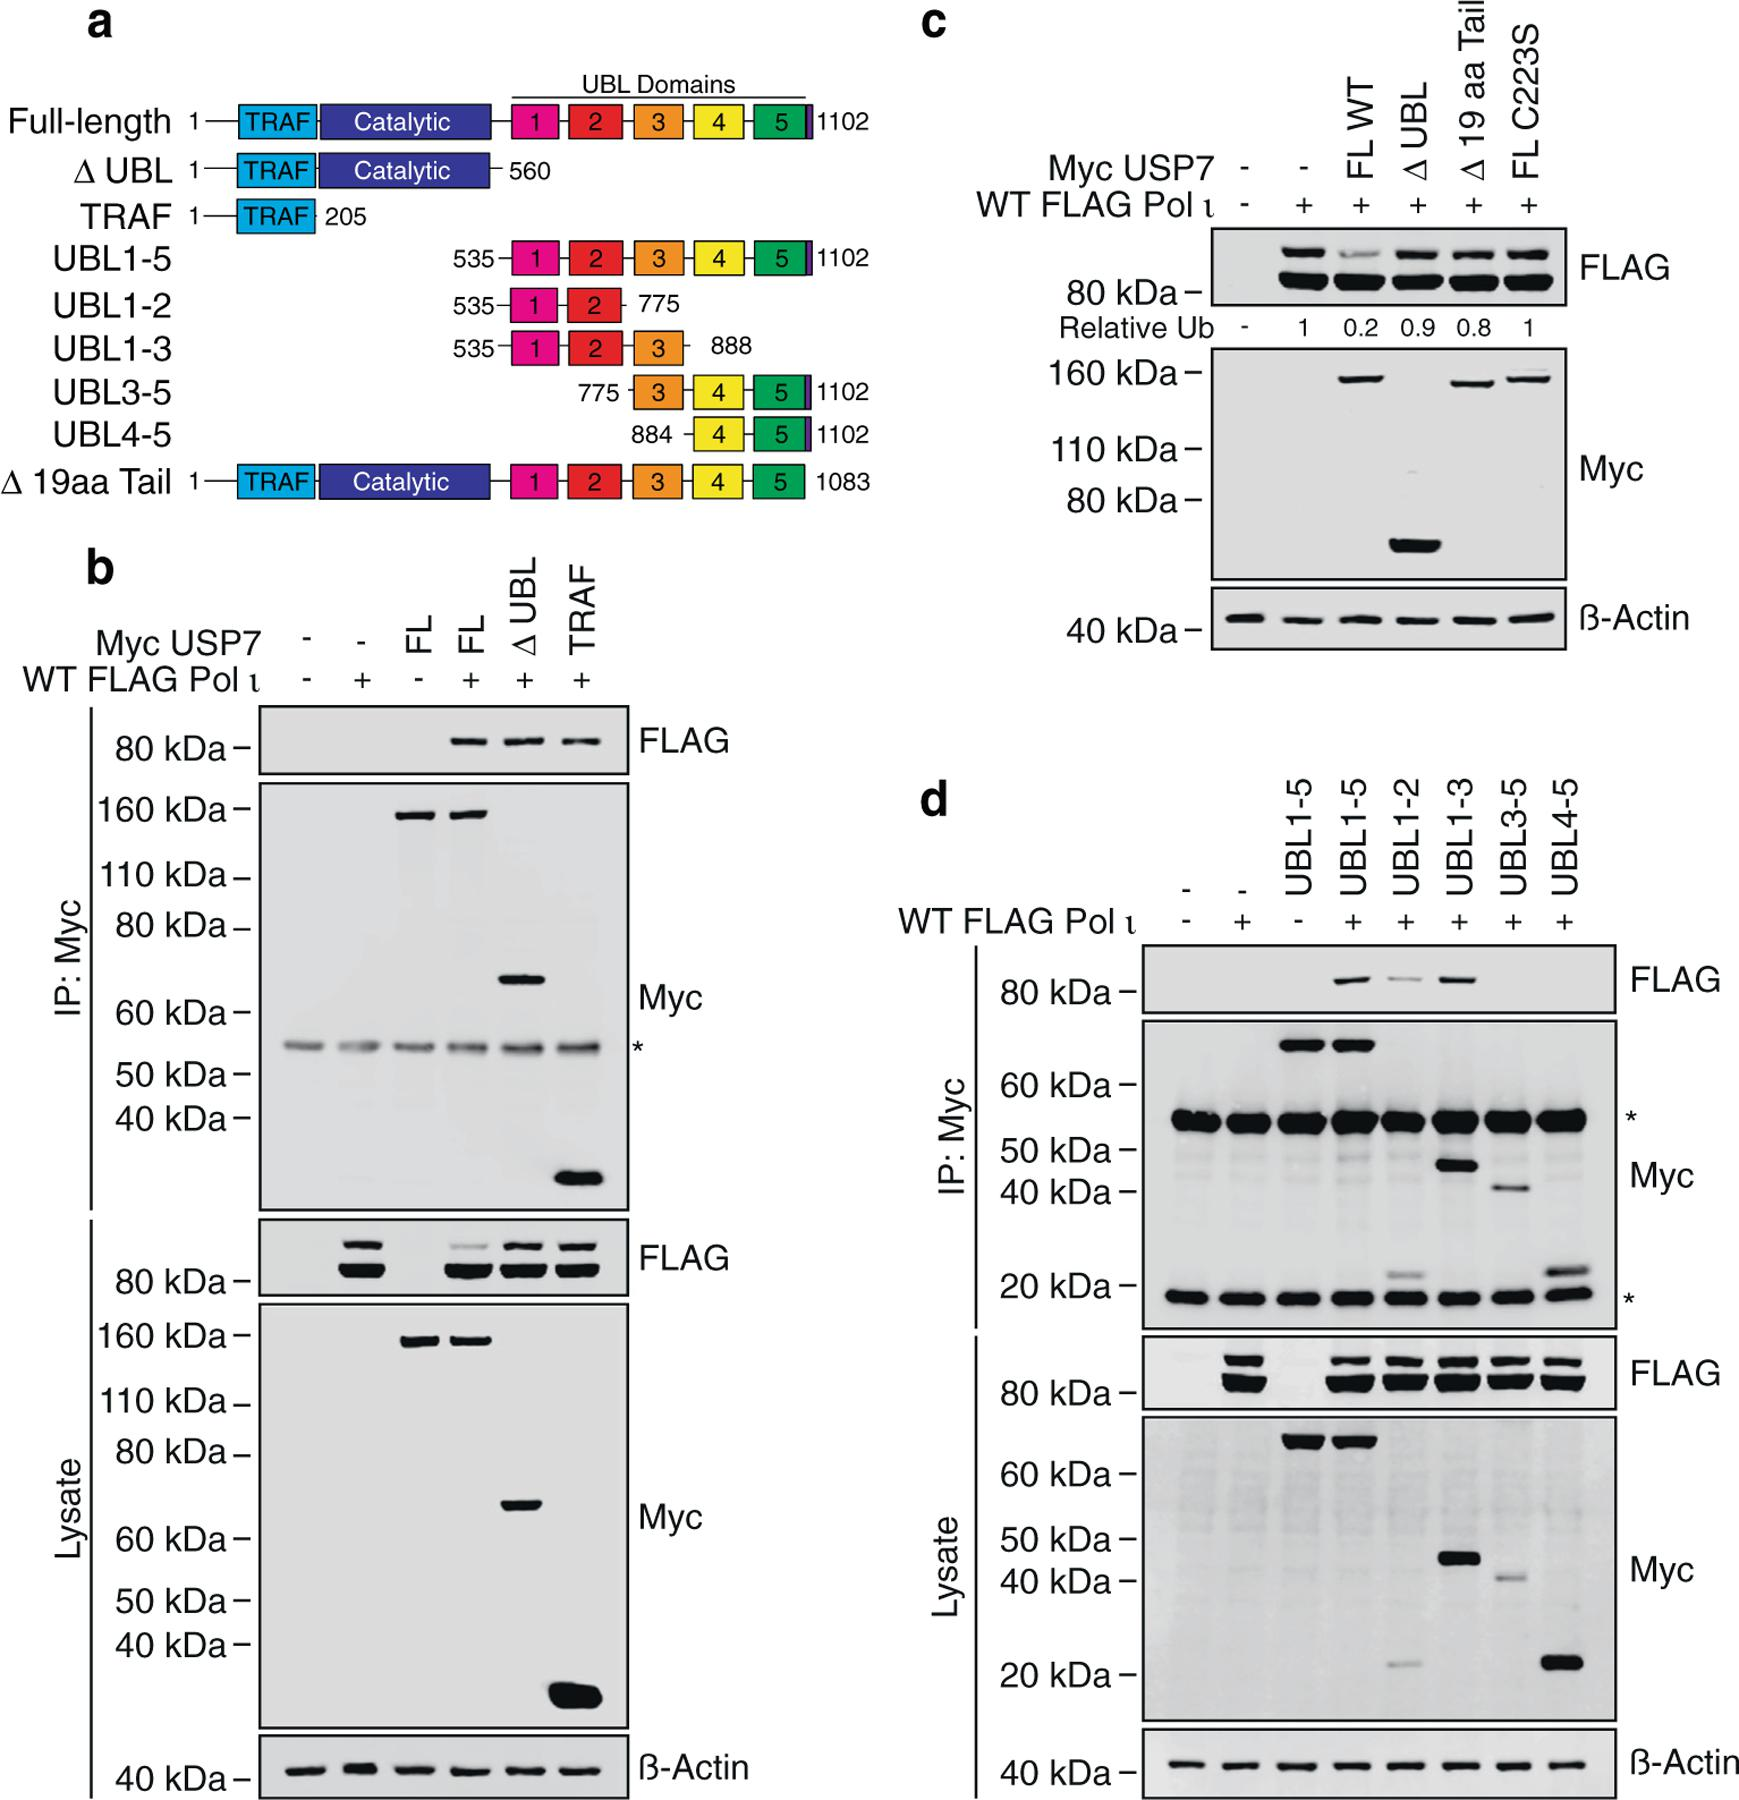 Pol ι associates with the TRAF and UBL1-2 domains of USP7. (a) Schematic illustrating USP7 truncation mutants employed in this figure. (b) Immunoprecipitation of the indicated USP7 truncations from HEK293T cells co-expressing WT FLAG Pol ι. Eluent and WCL (input) were immunoblotted as indicated. * = Myc antibody proteins. (c) WT FLAG Pol ι was co-expressed in 293T cells with WT Myc USP7, or a mutant lacking 19 aa from the C-terminal tail (Δ 19 aa Tail). WCL was then prepared and immunoblotted as indicated. (d) Immunoprecipitation of the indicated USP7 truncations from 293T cells co-expressing WT FLAG Pol ι. Eluent and WCL (input) were immunoblotted as indicated. * = Myc antibody proteins.